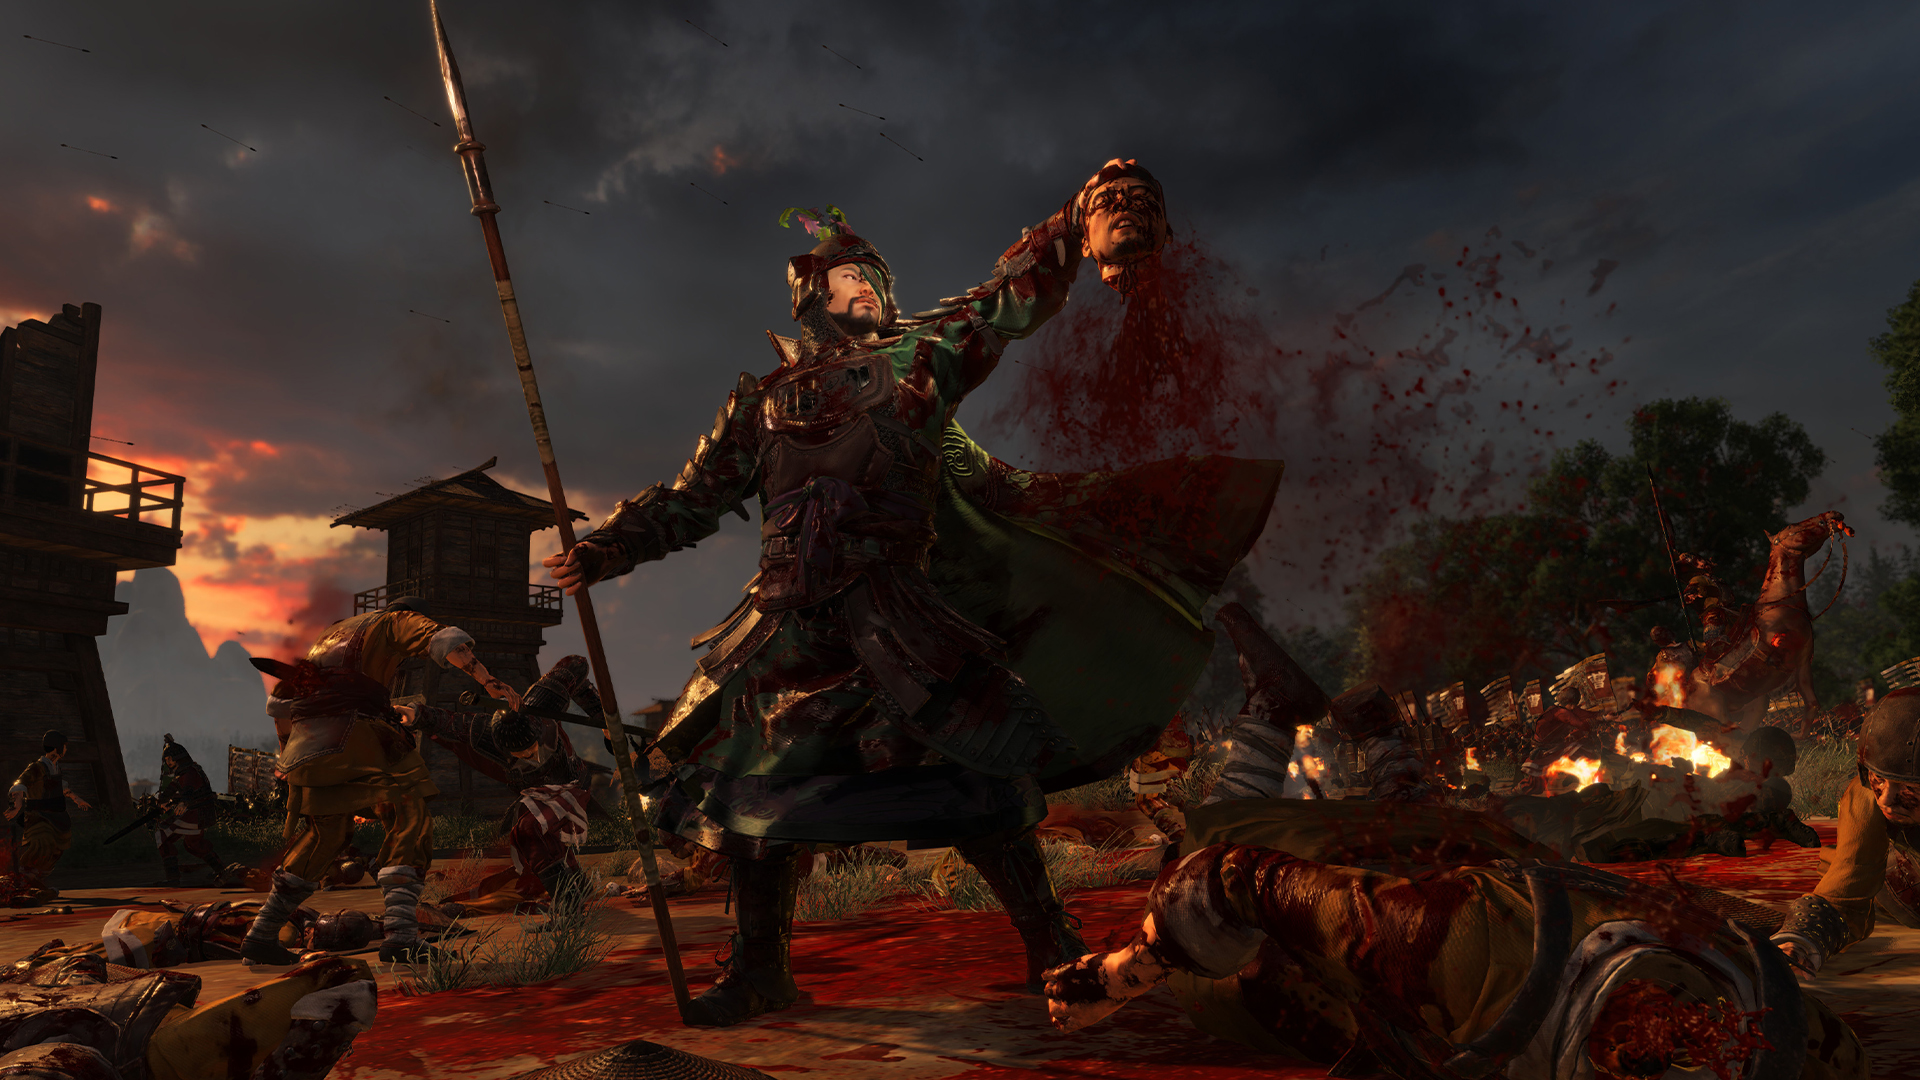 Total War: Three Kingdoms is getting review bombed after devs terminate support